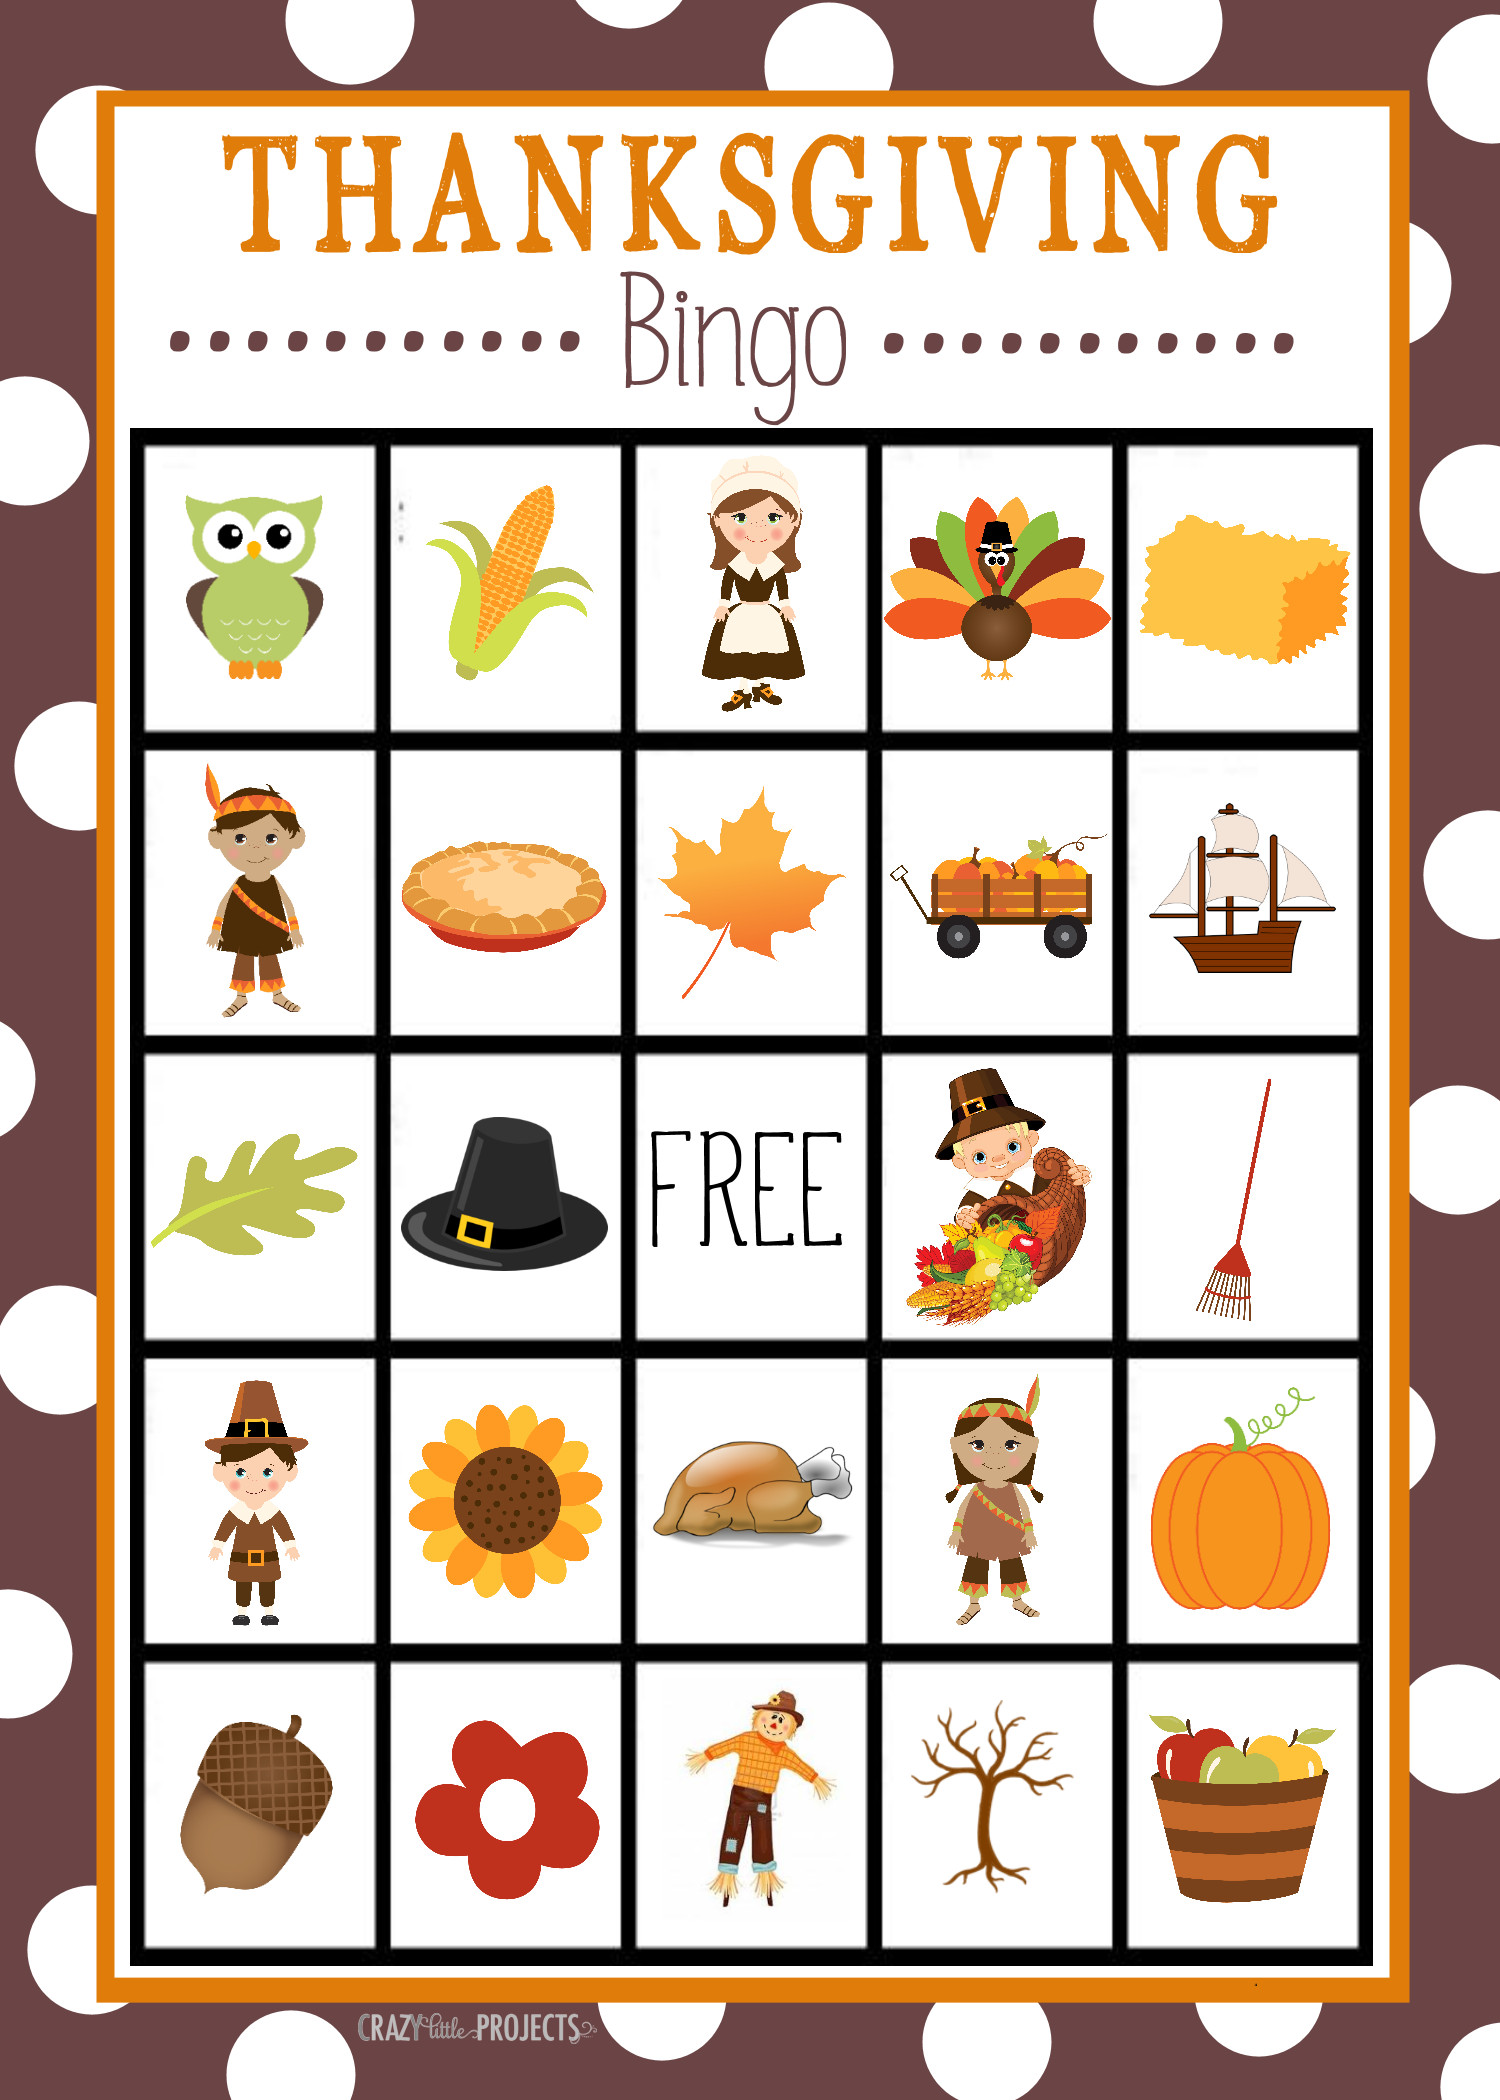 Thanksgiving Turkey Games  Free Printable Thanksgiving Bingo Game Crazy Little Projects